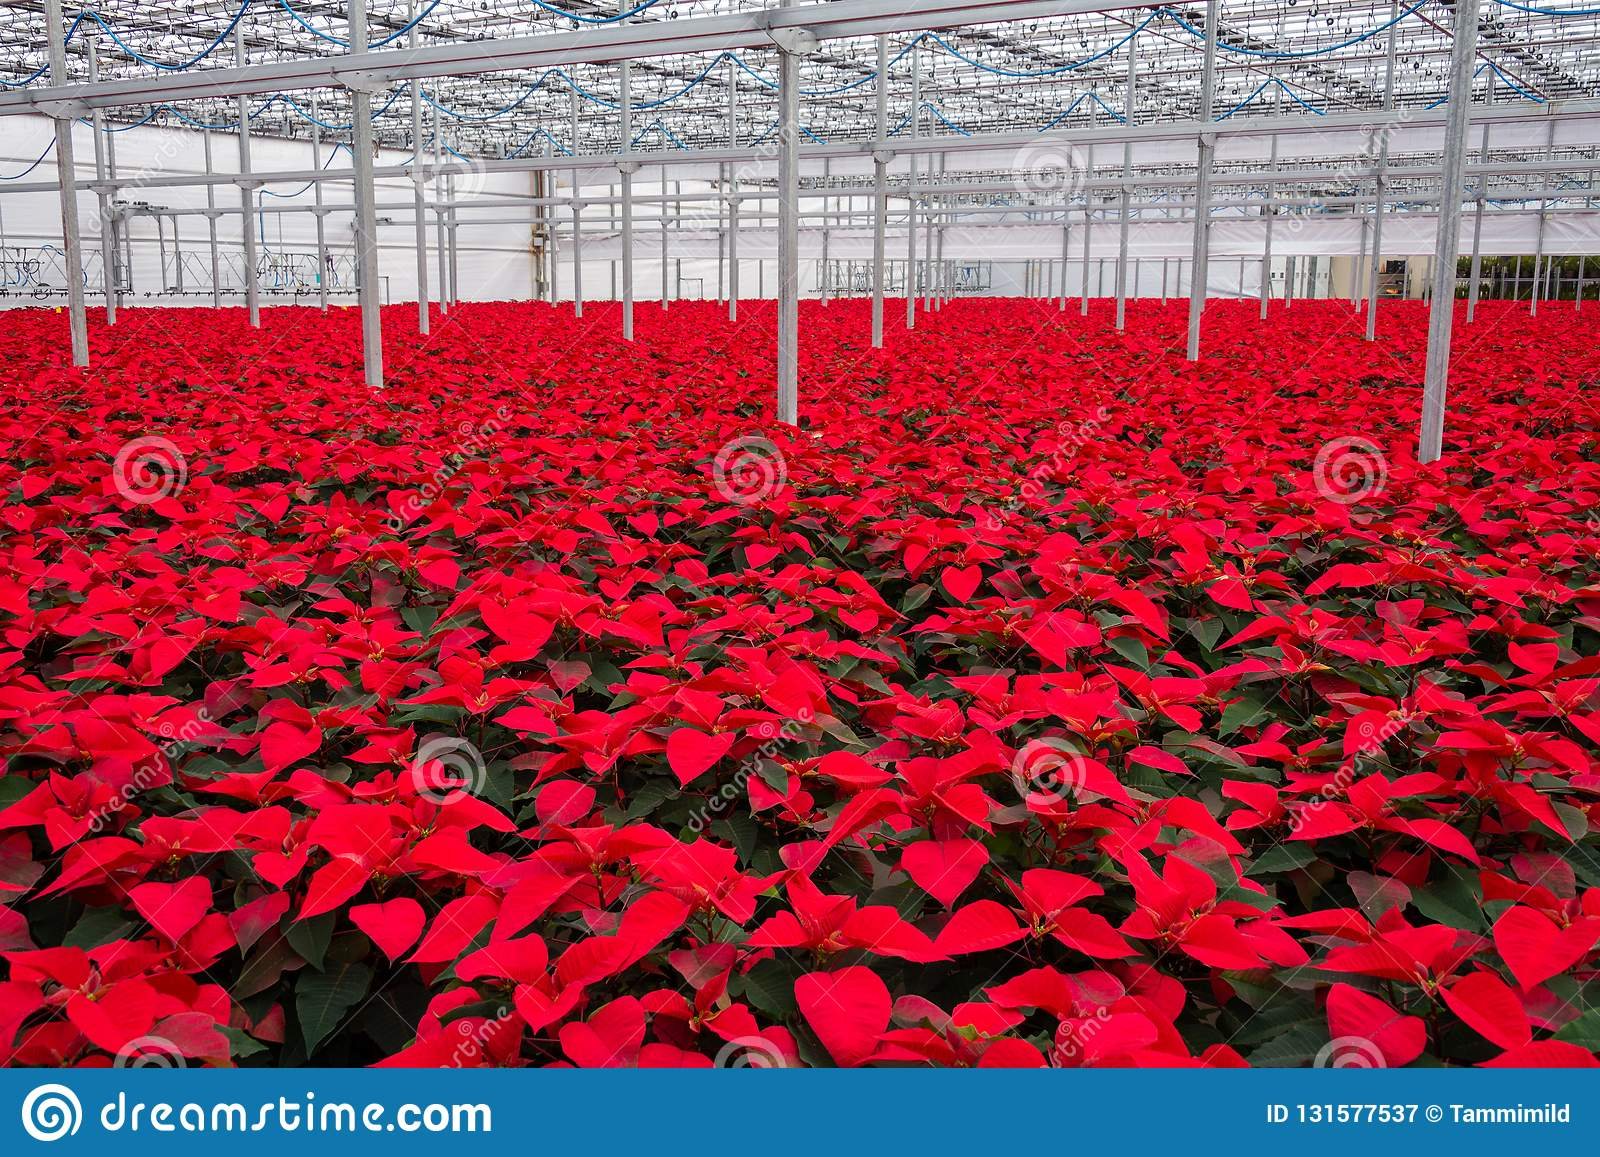 Indoor large greenhouse poinsettia flowers